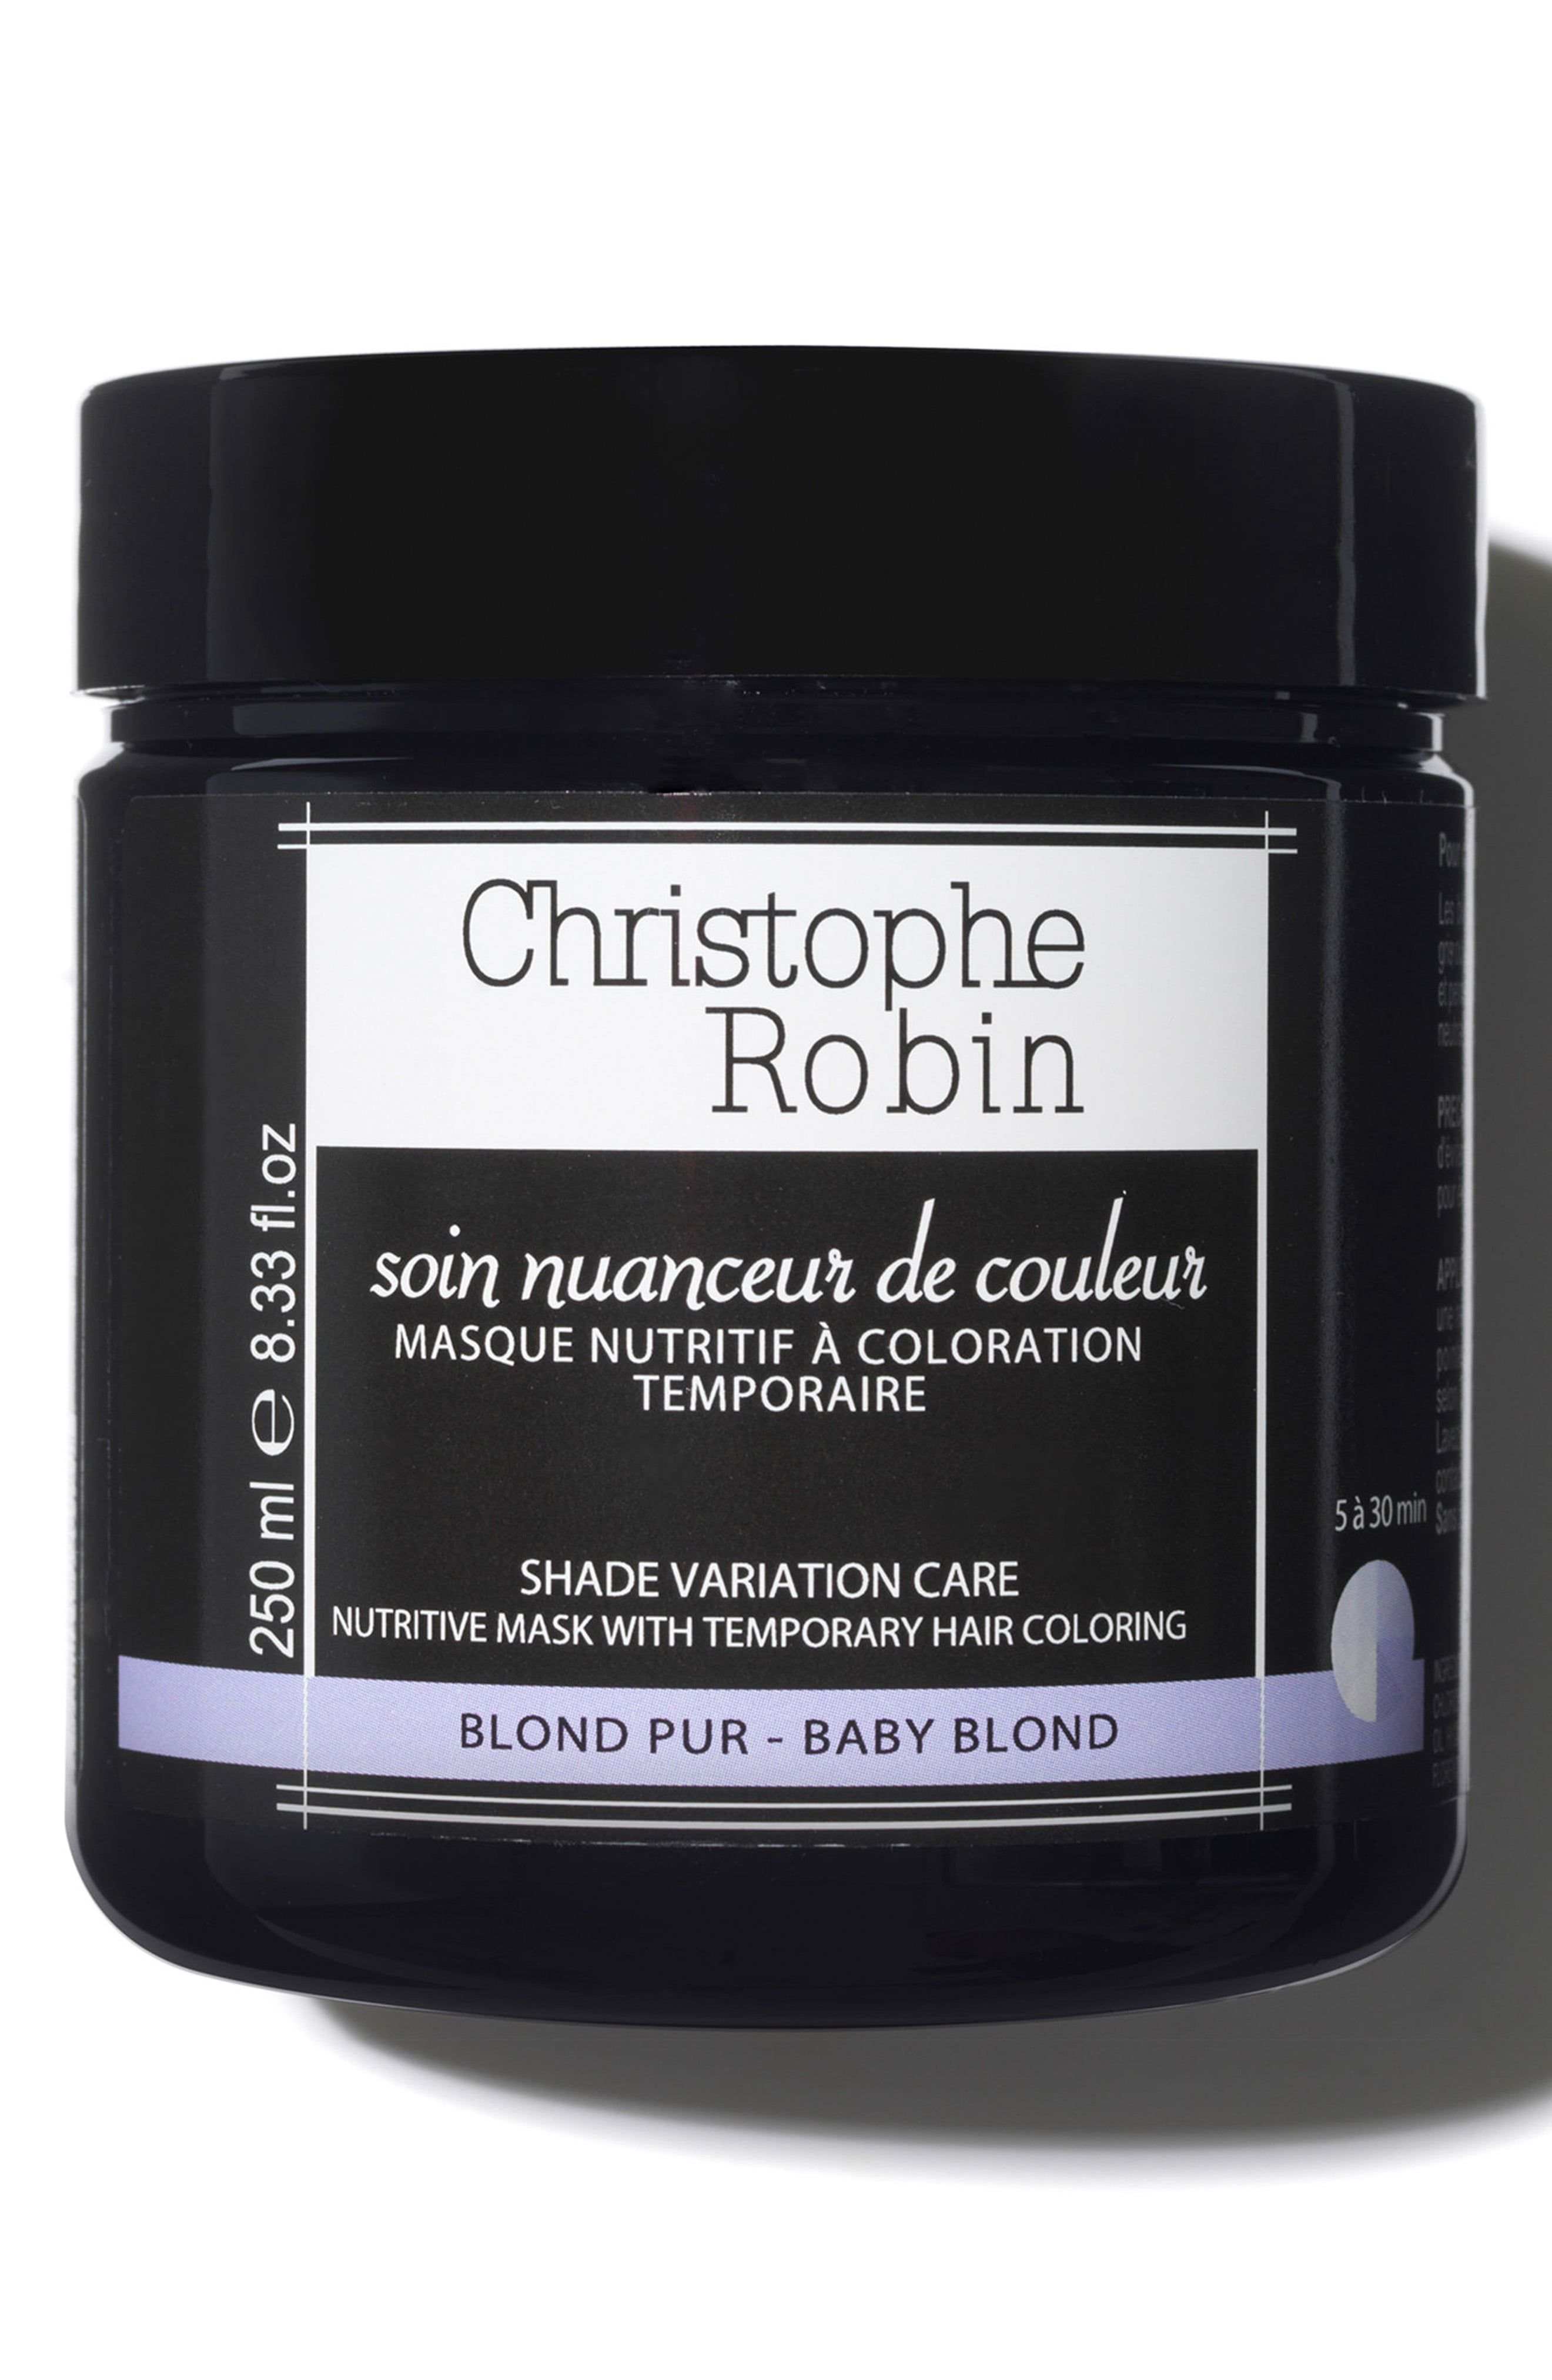 Christophe Robin Shade Variation Care Mask, Size 1.7 oz